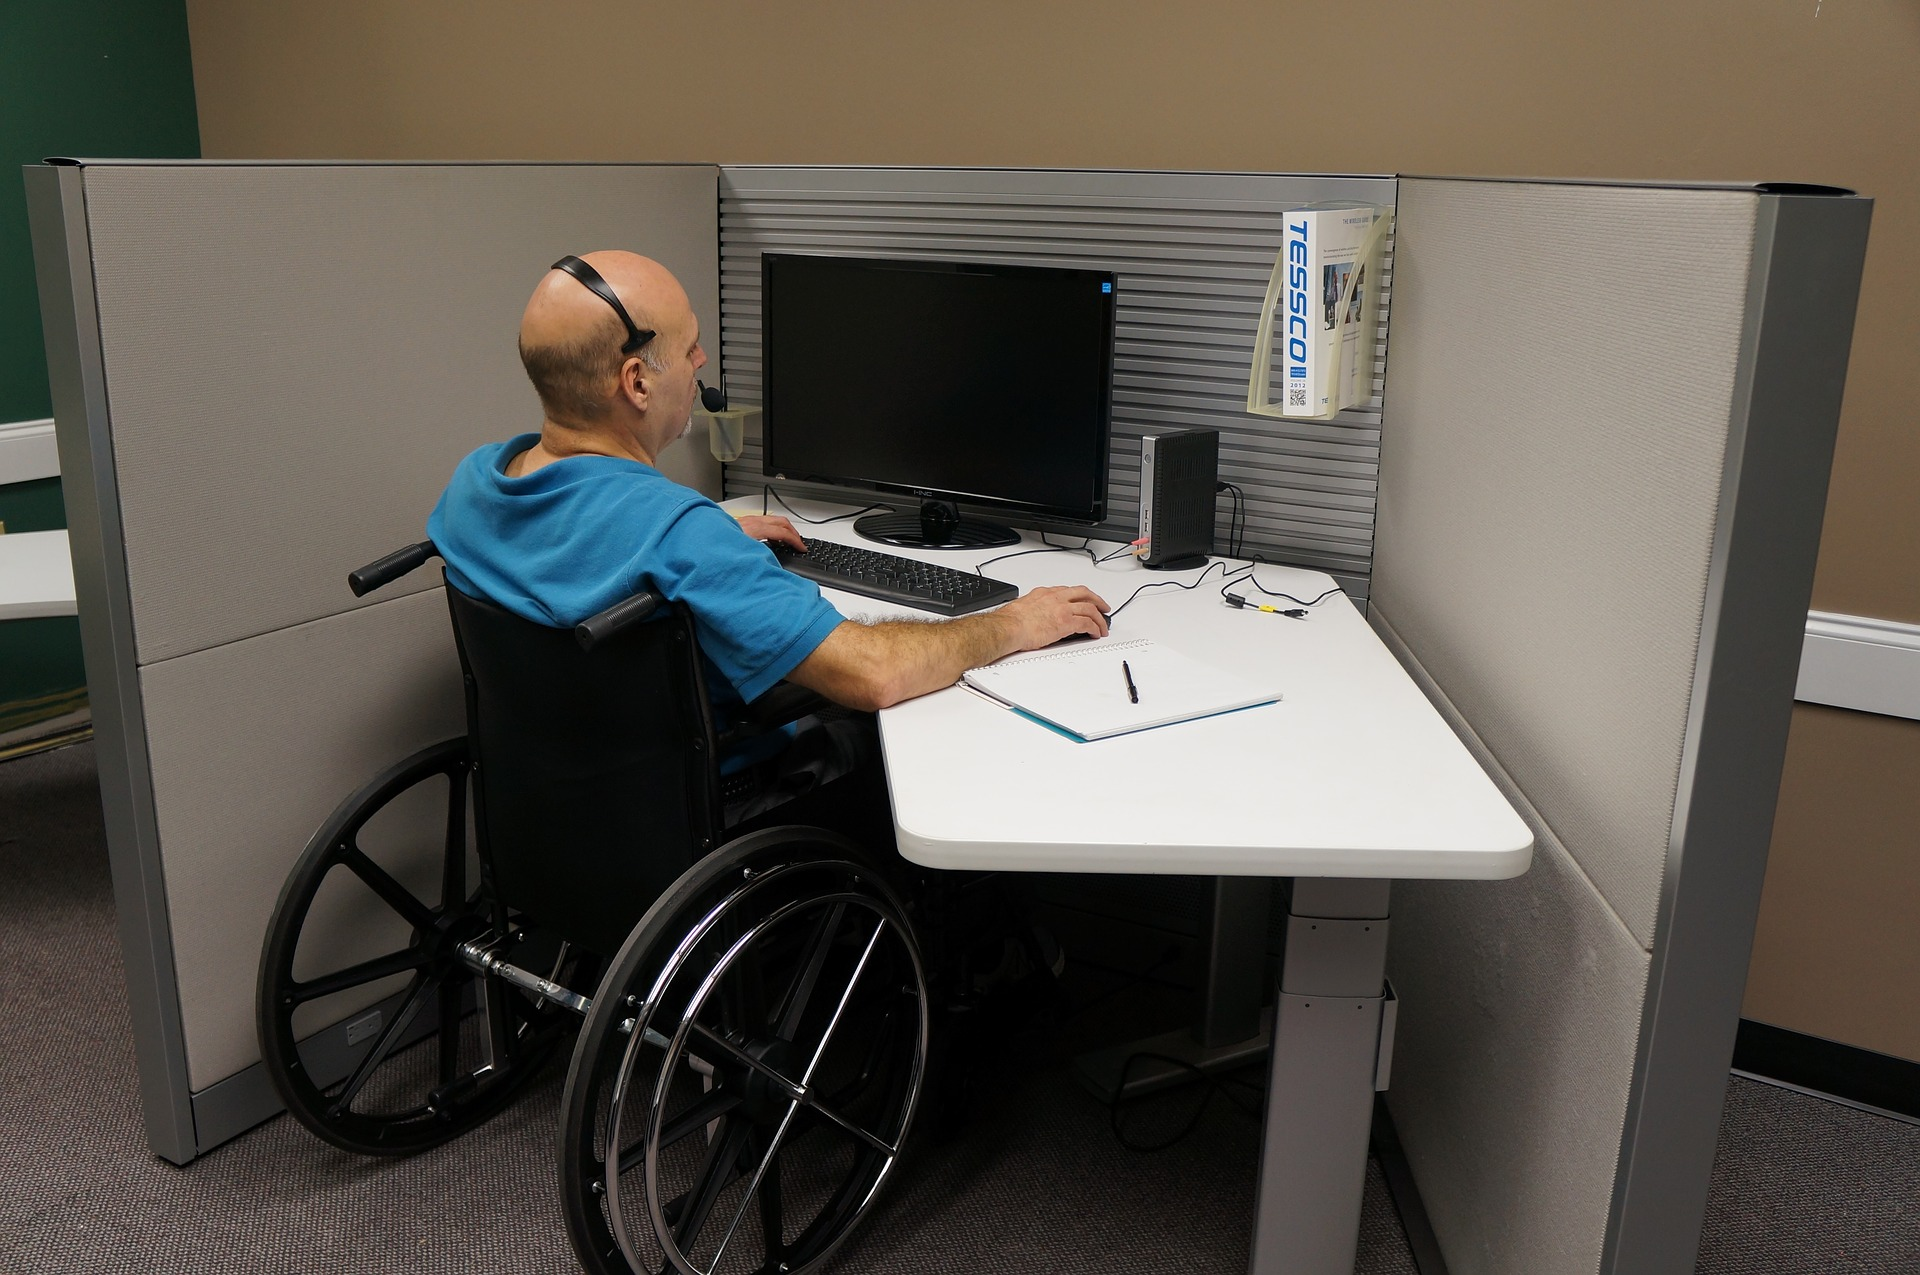 Online business could help disabled people to generate income